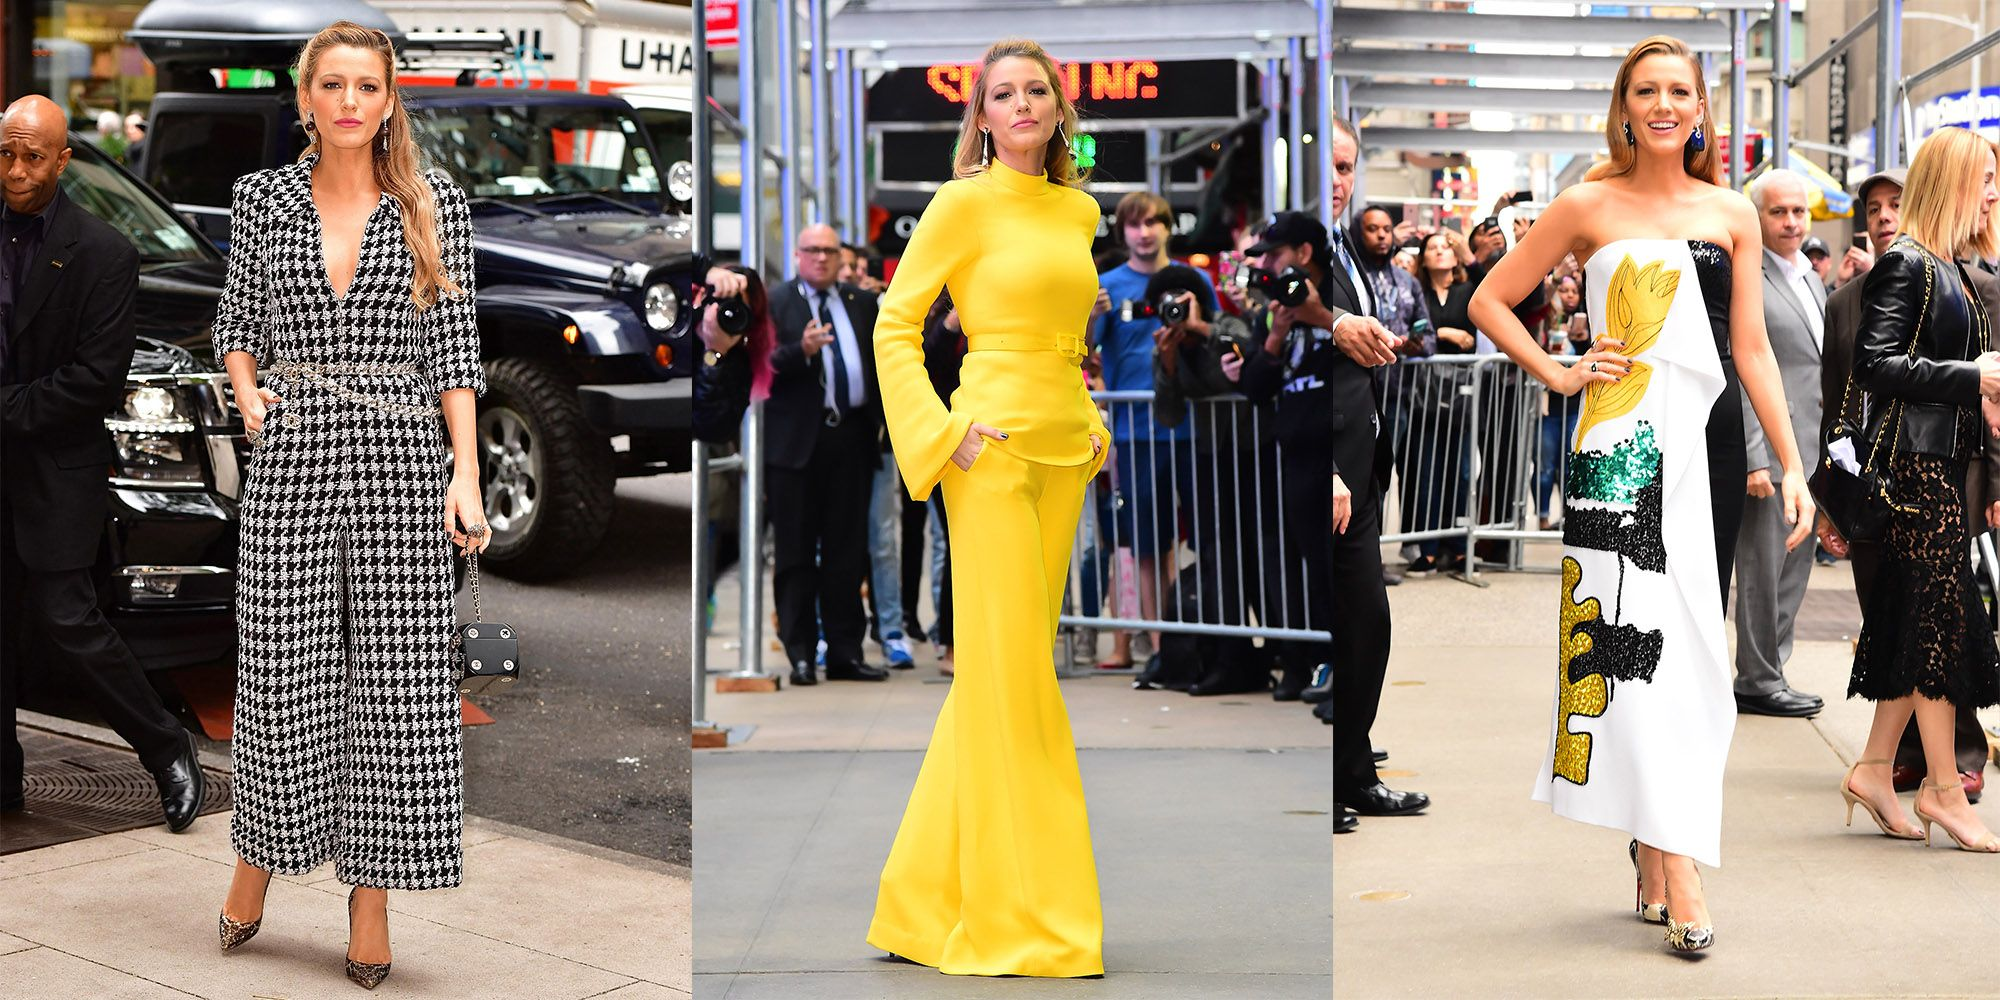 Blake Lively Has Already Worn Three Outfits Today and They All Looked Stunning